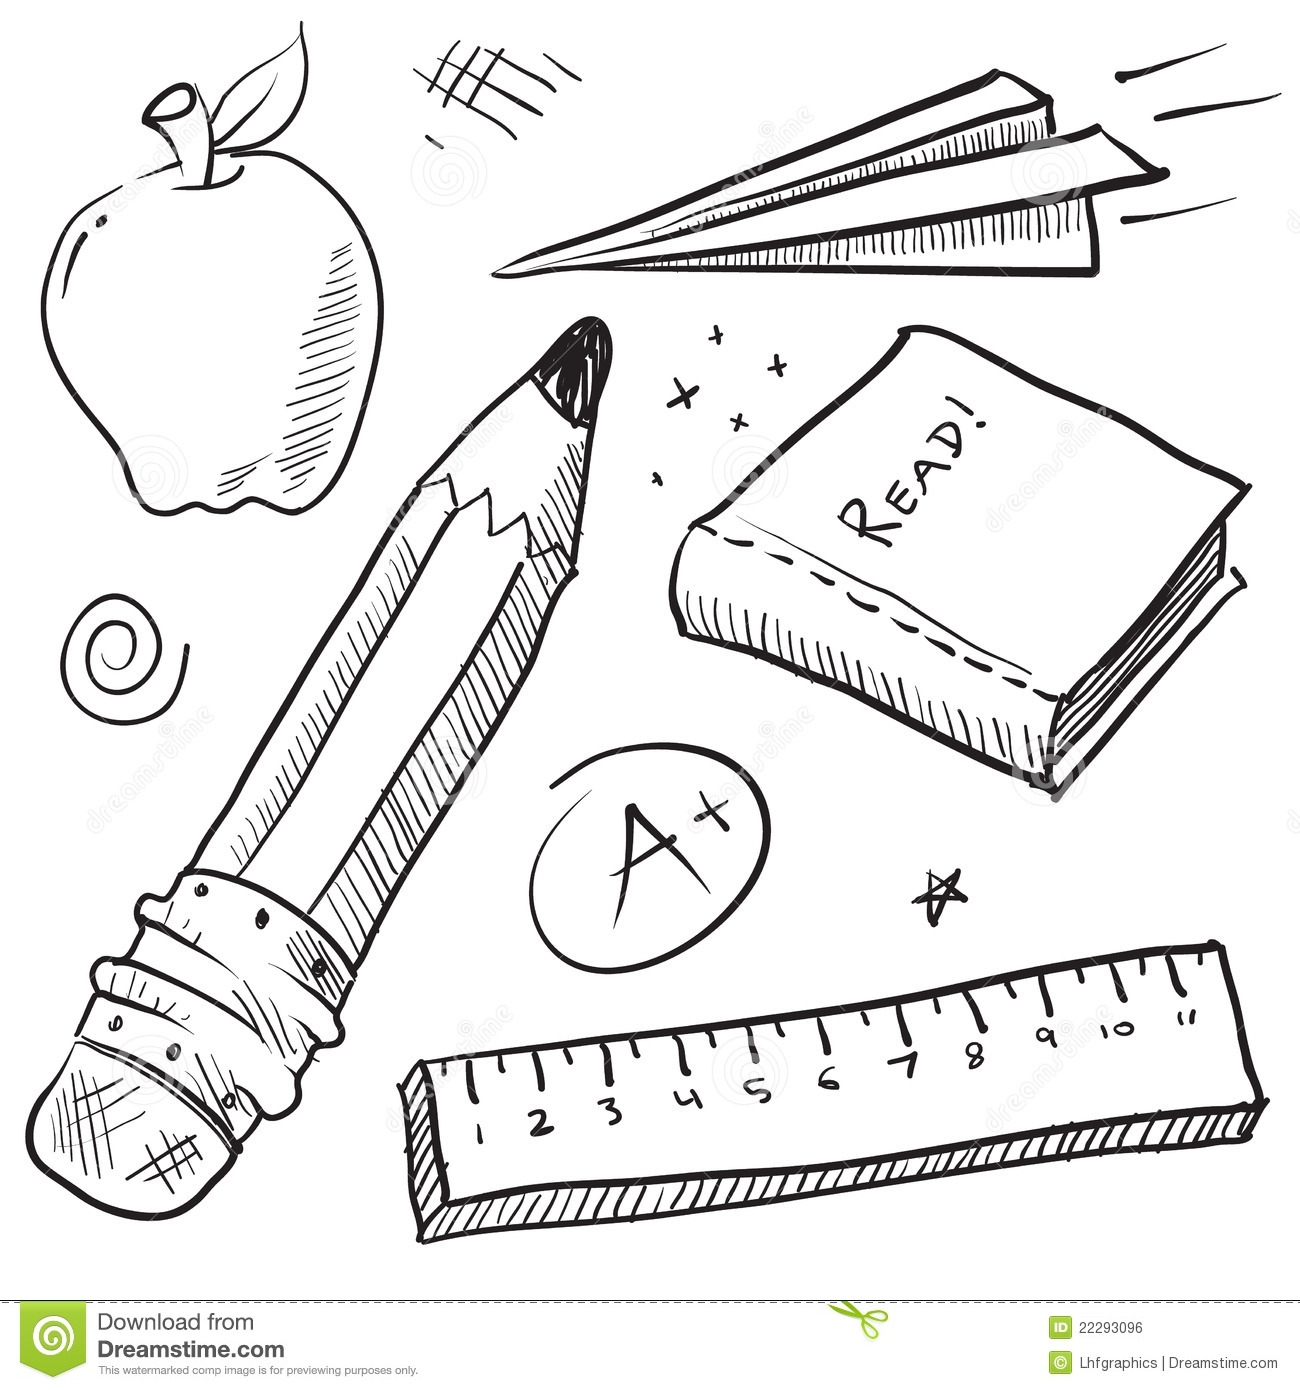 1st grade coloring pages - royalty free stock image school objects illustration image